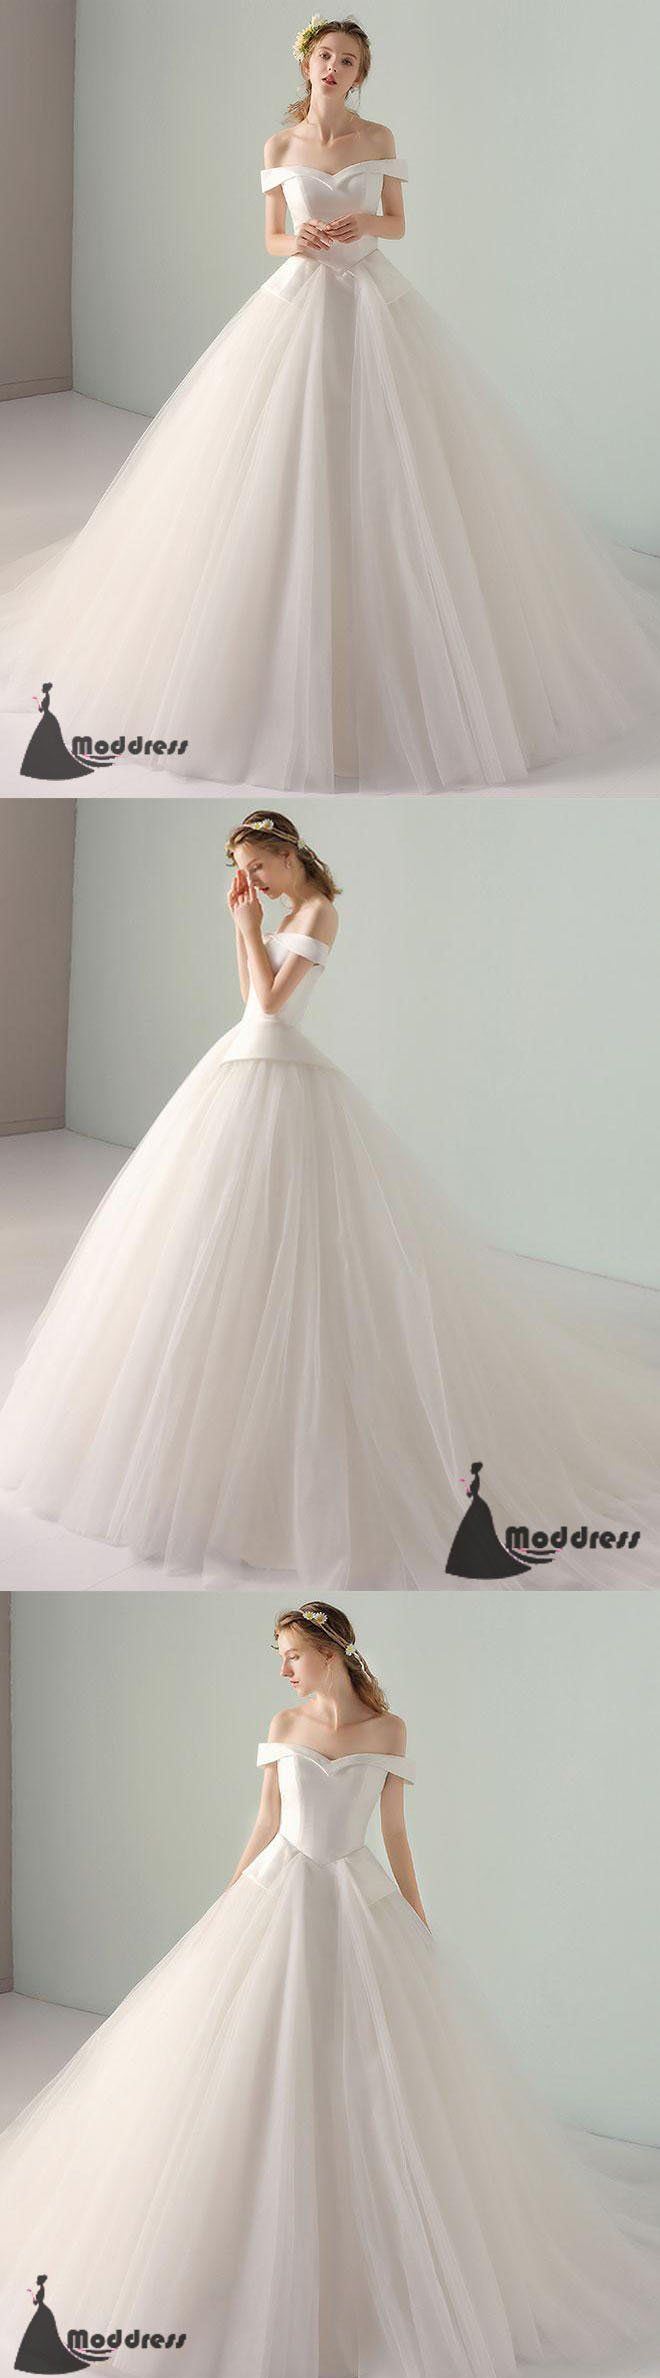 Simple long prom dress off the shoulder wedding dress tulle white